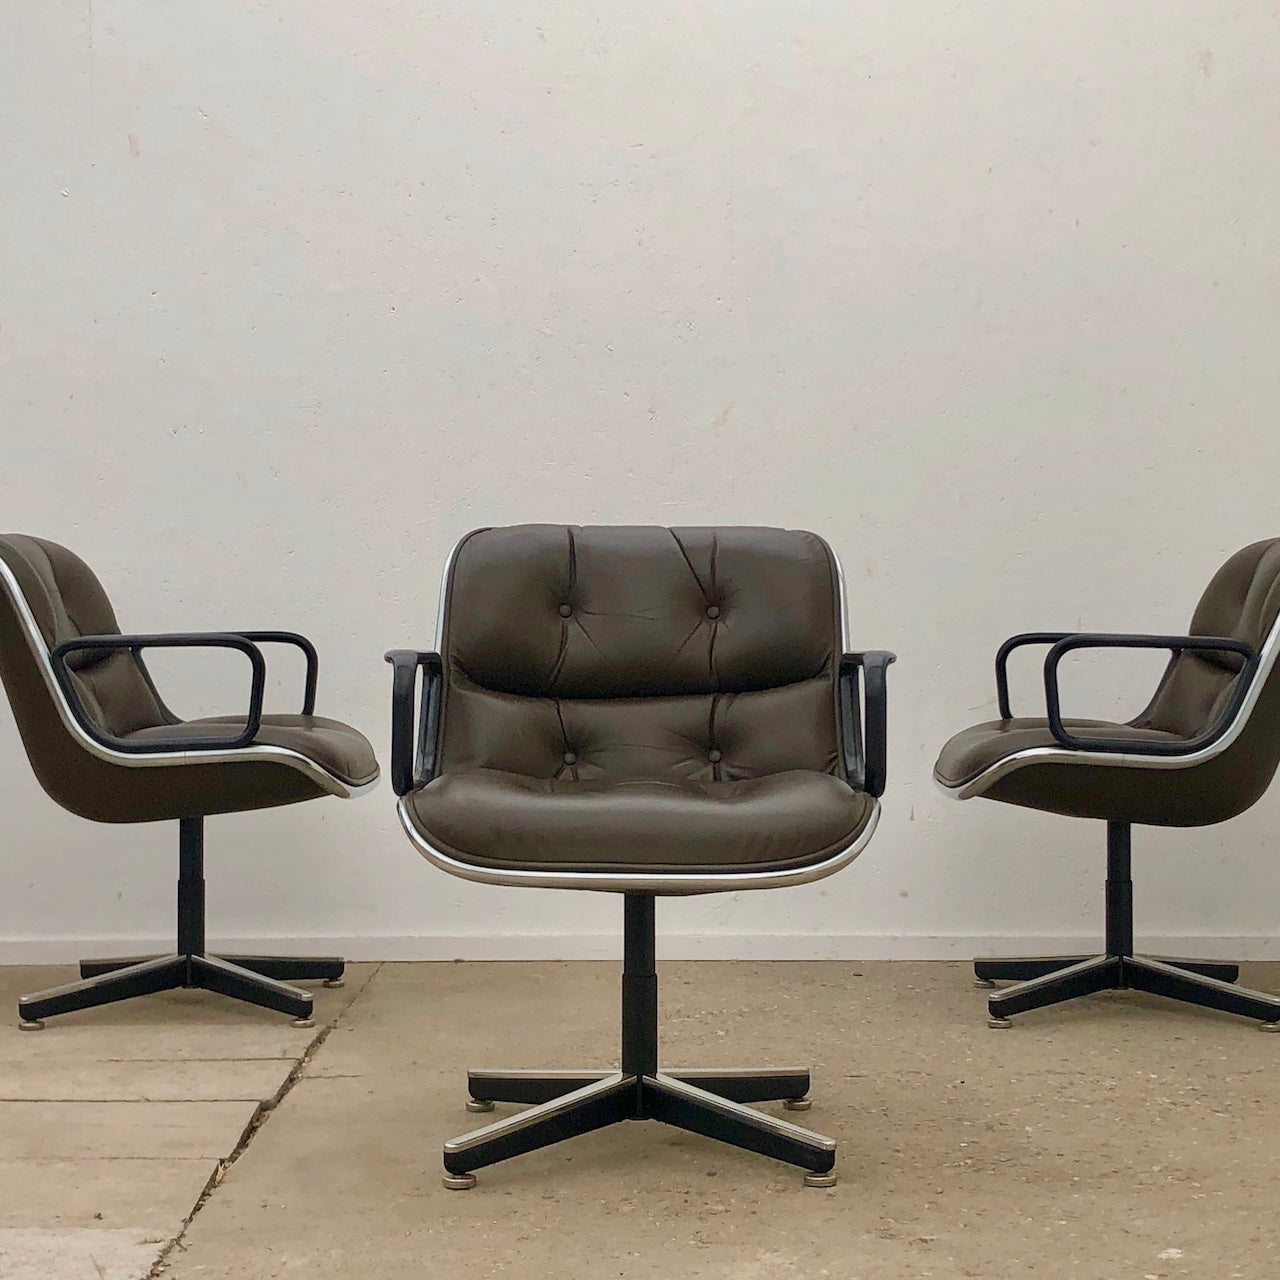 Executive office chairs by Charles Pollock for Knoll International